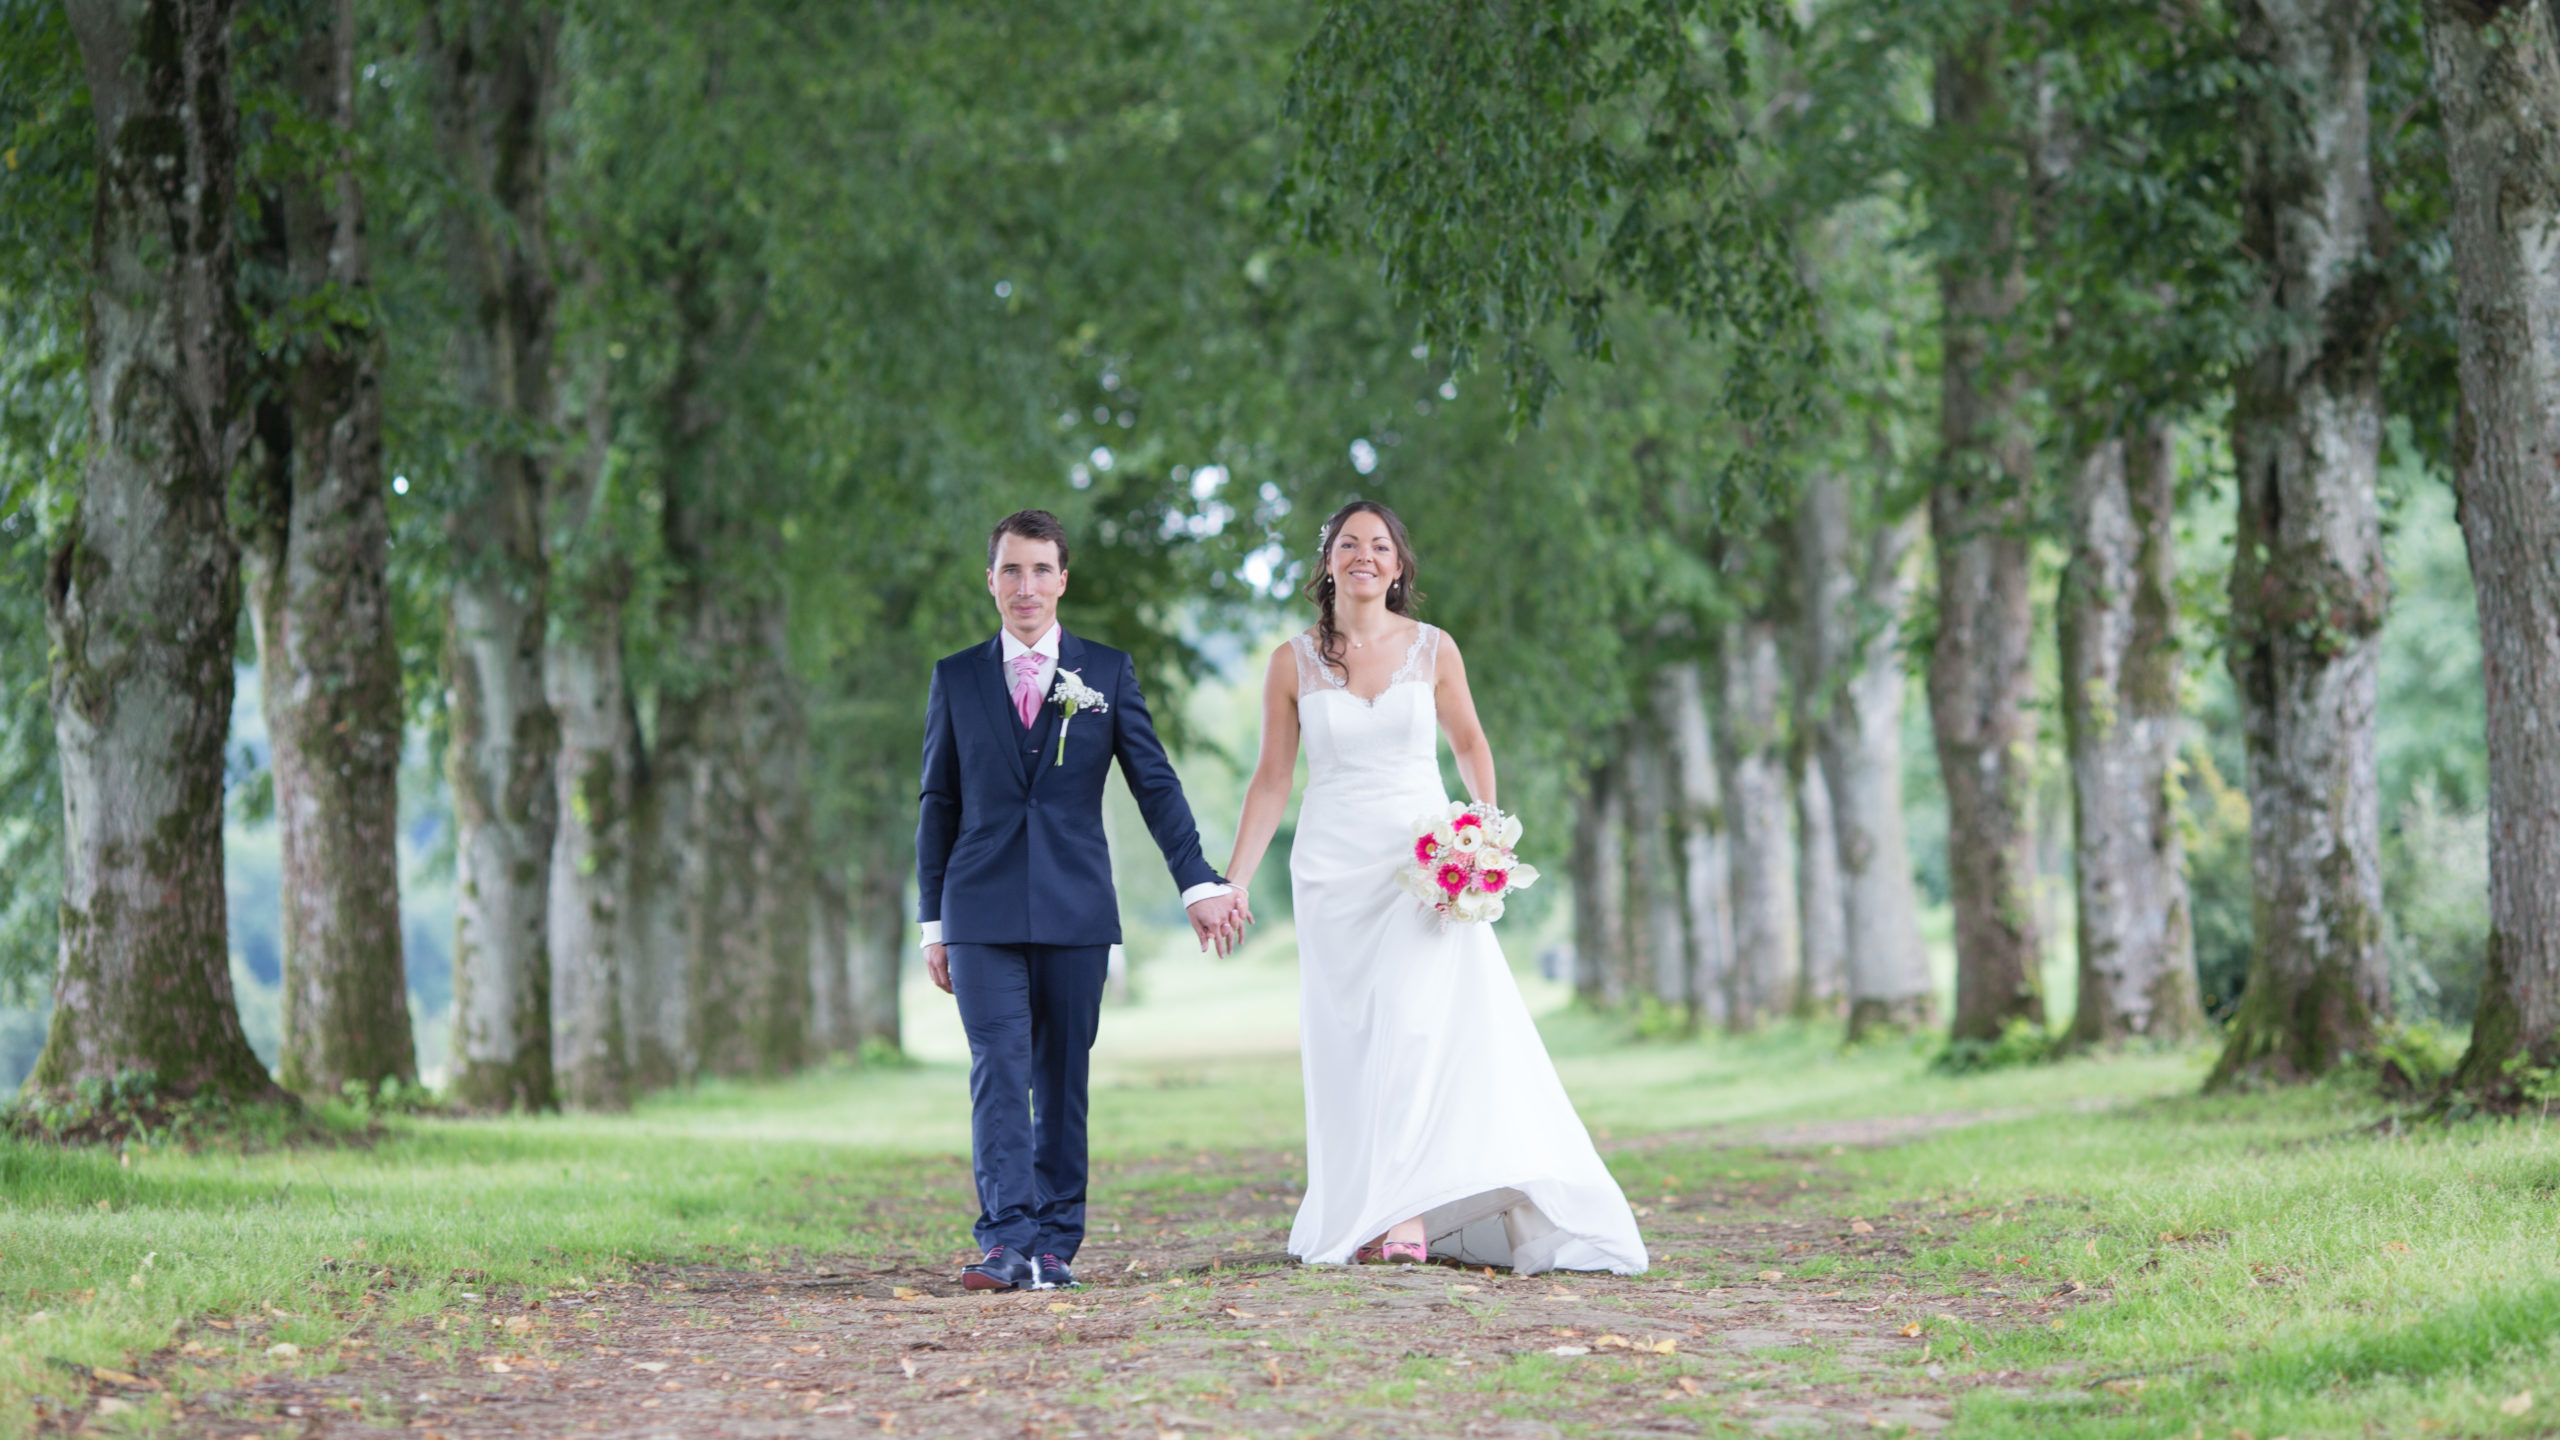 Photographe mariage Ardennes nature